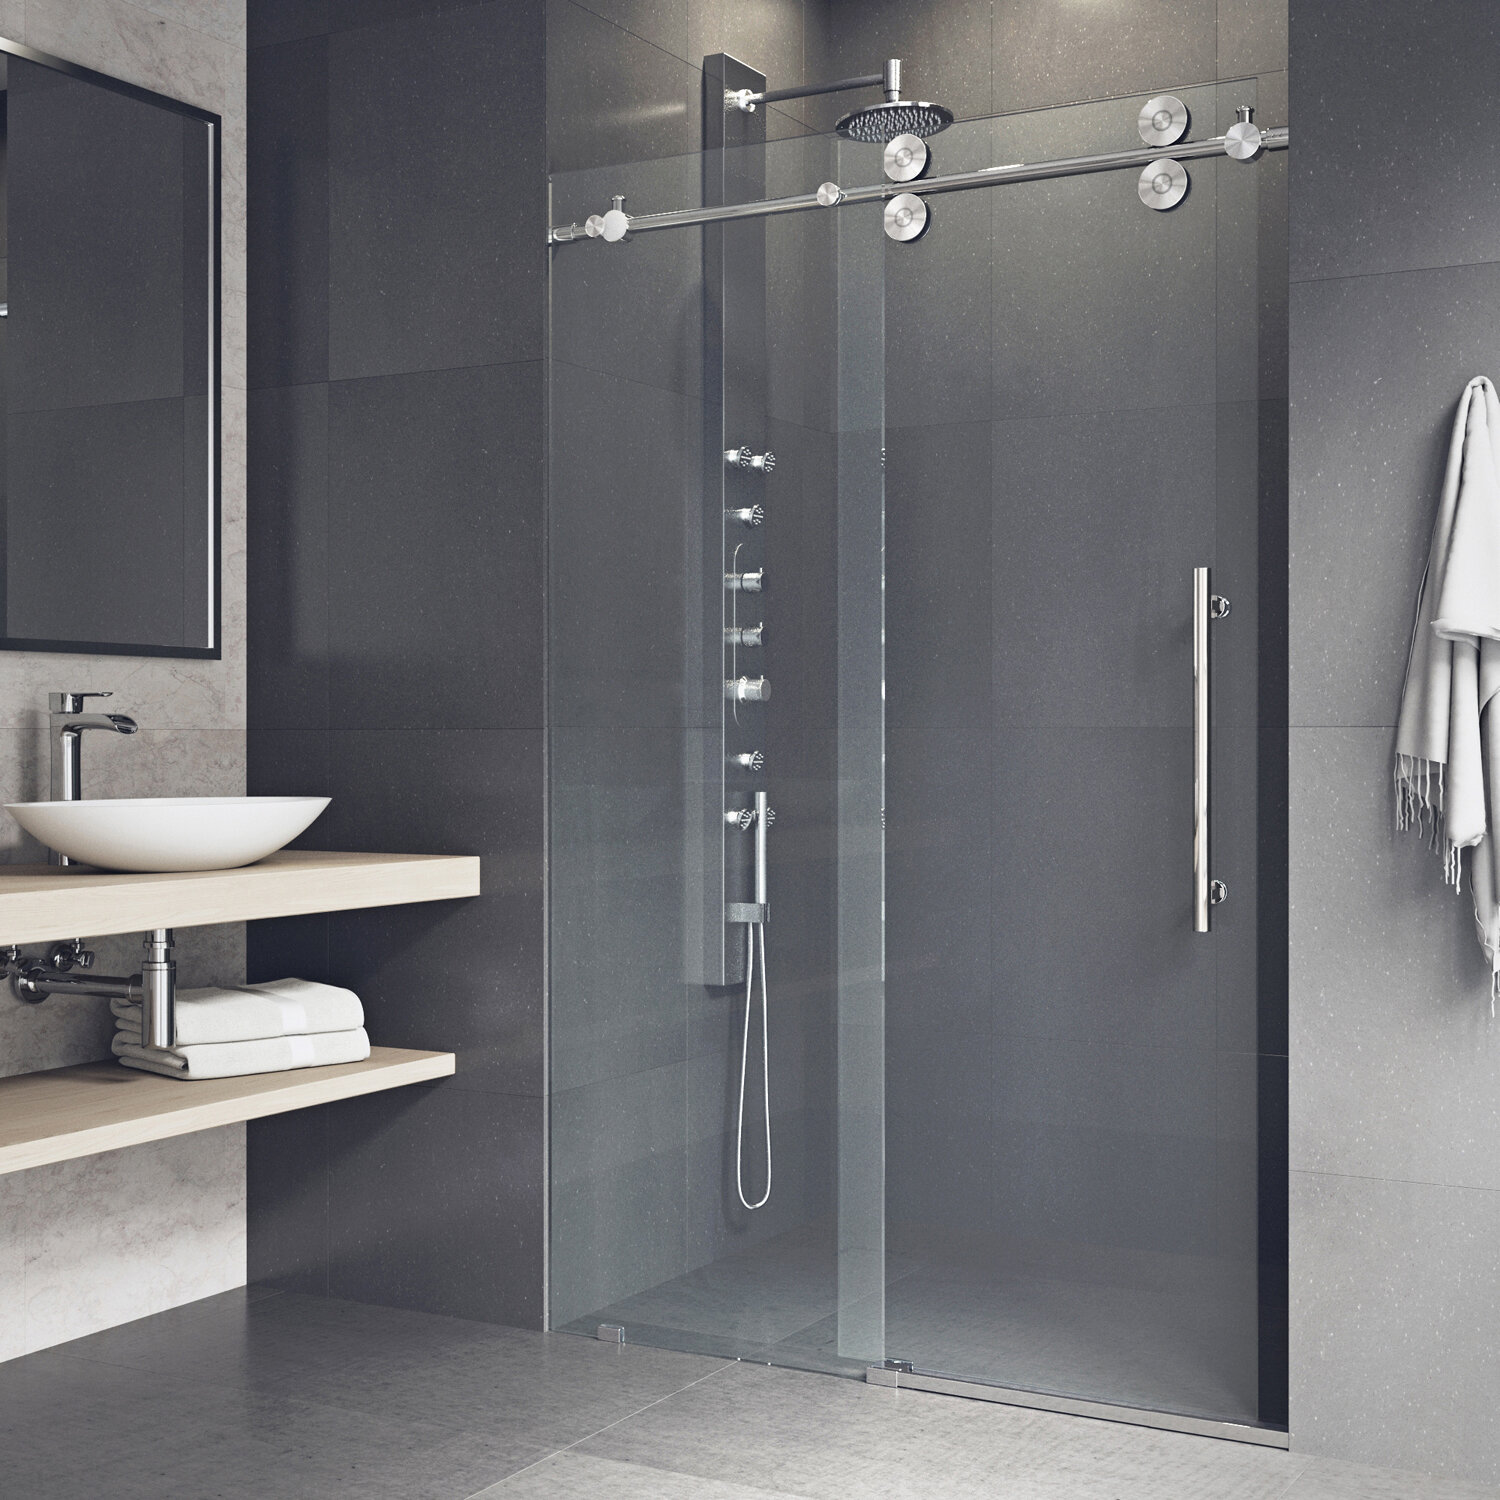 Elan 68 X 74 Single Sliding Frameless Shower Door With Rollerdisk Technology